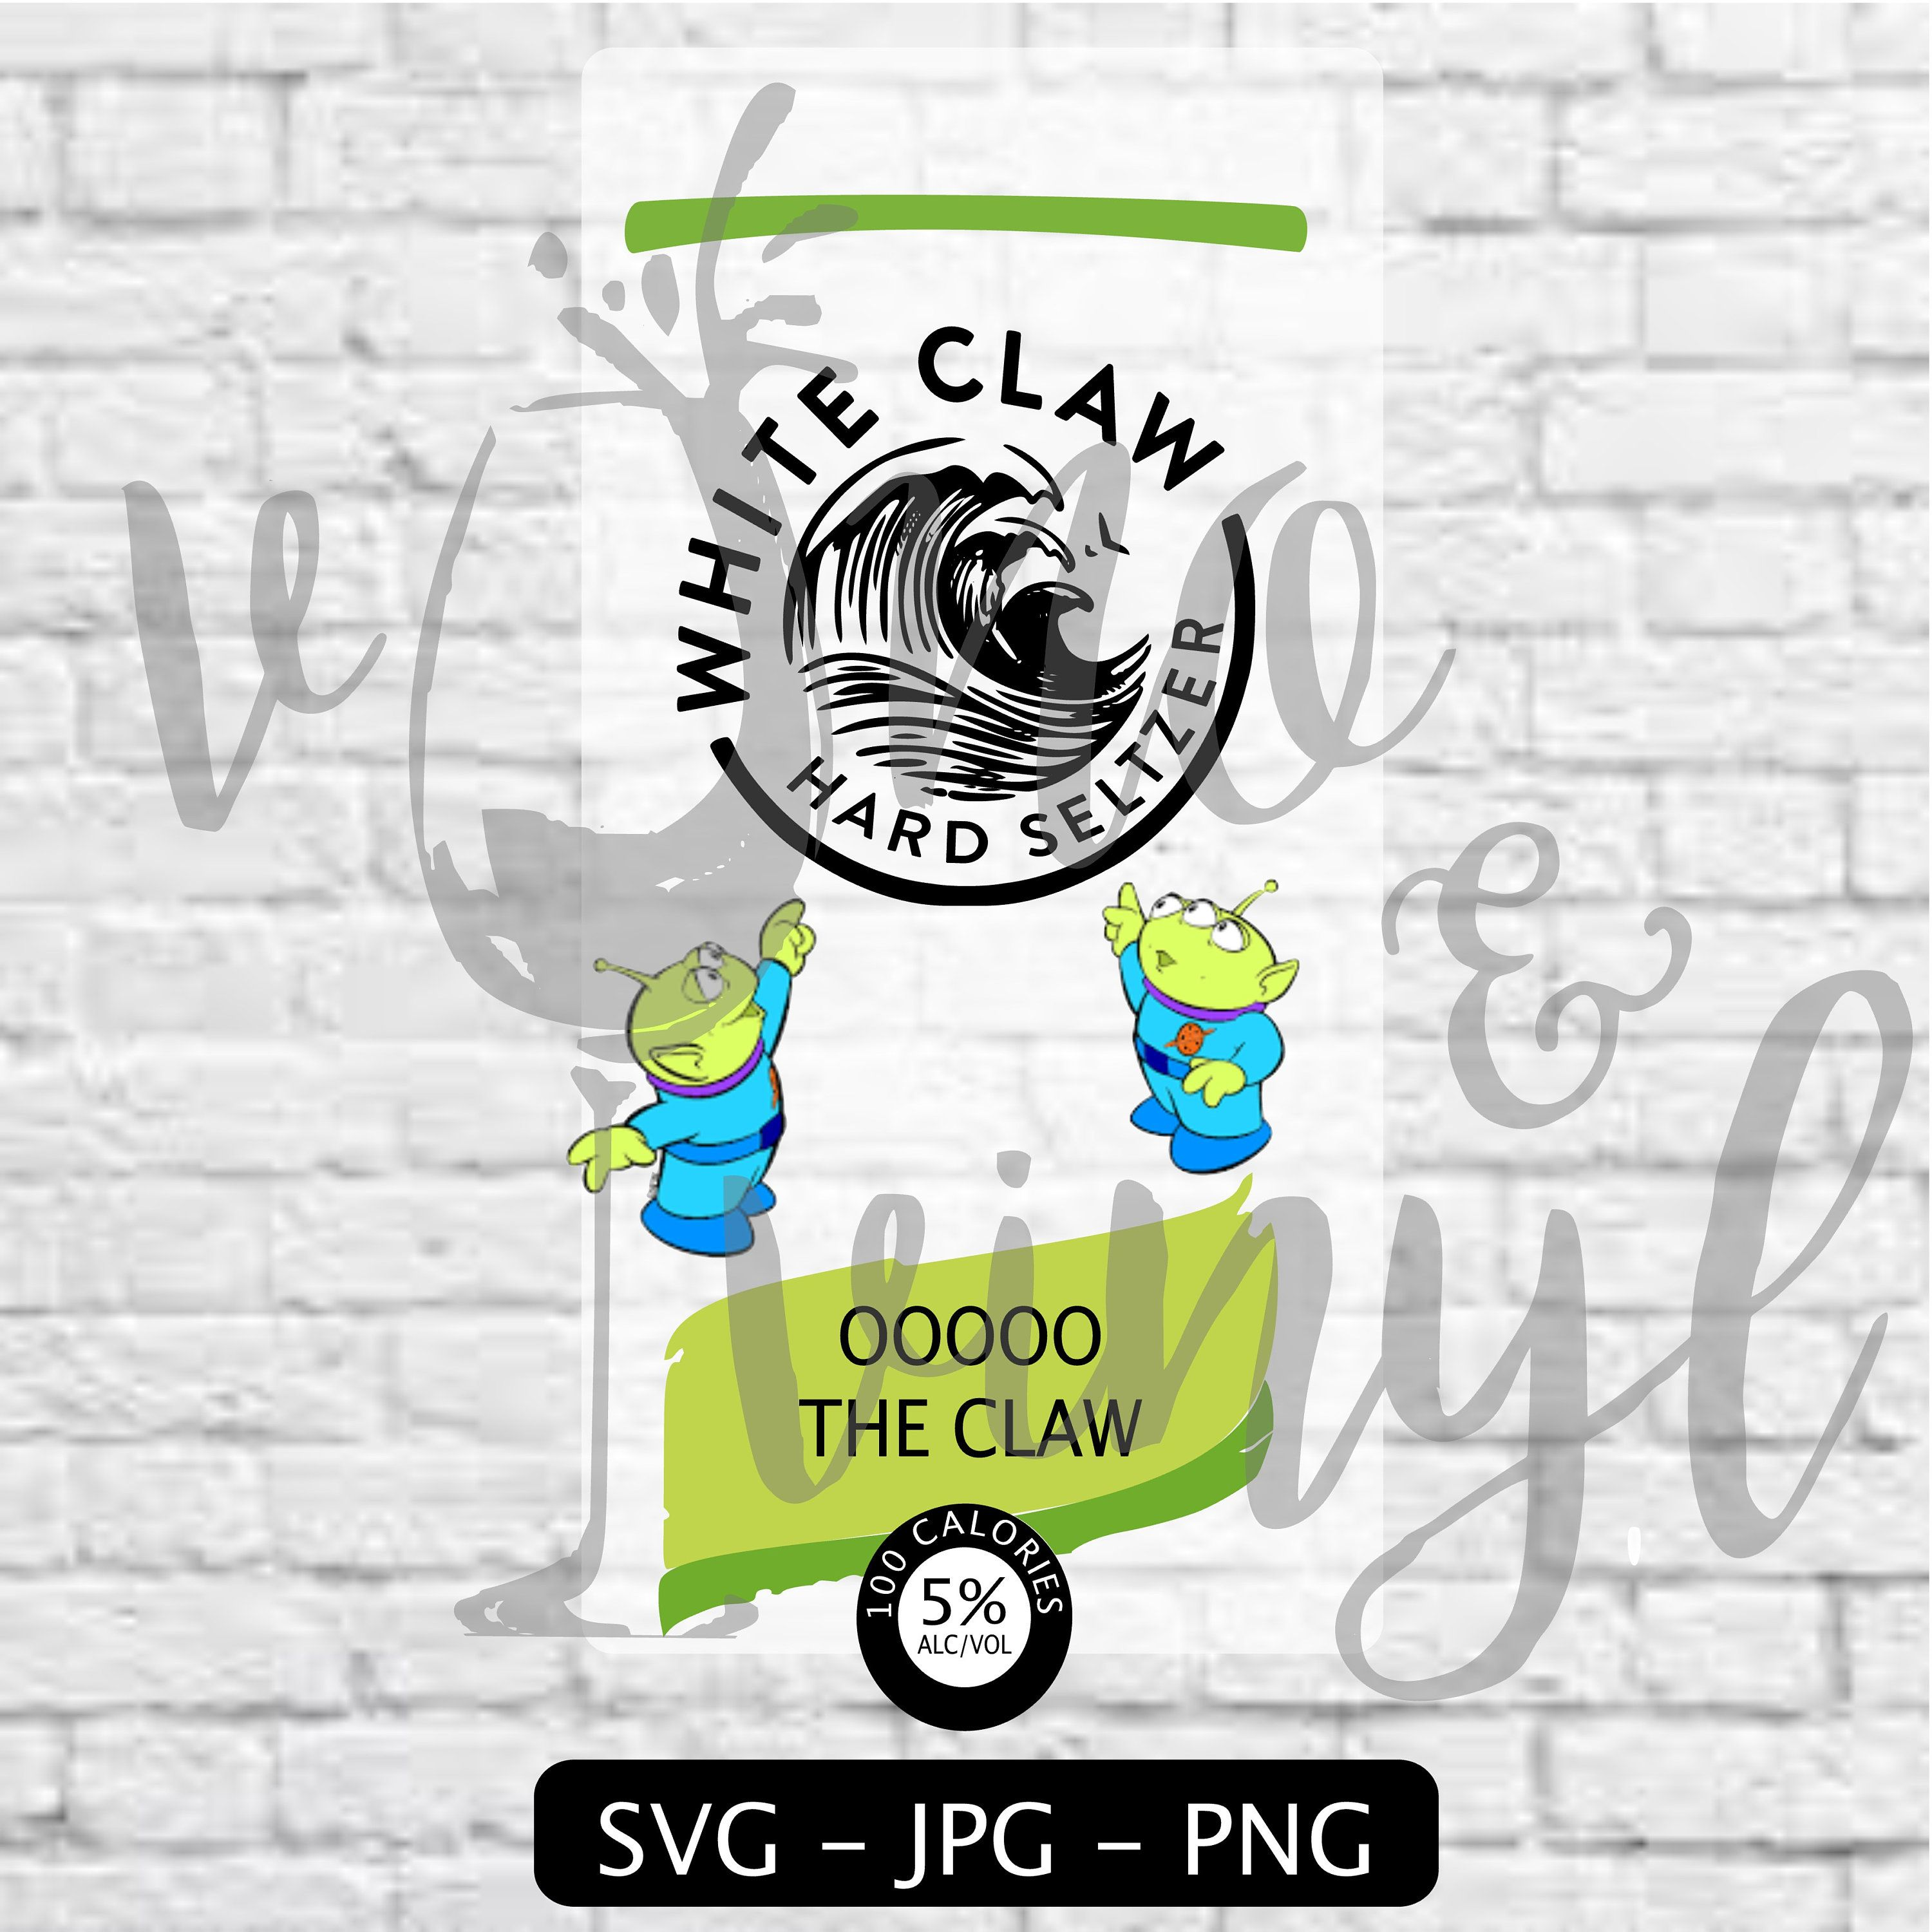 White Claw SVG & Image The Claw Image in 2020 (With